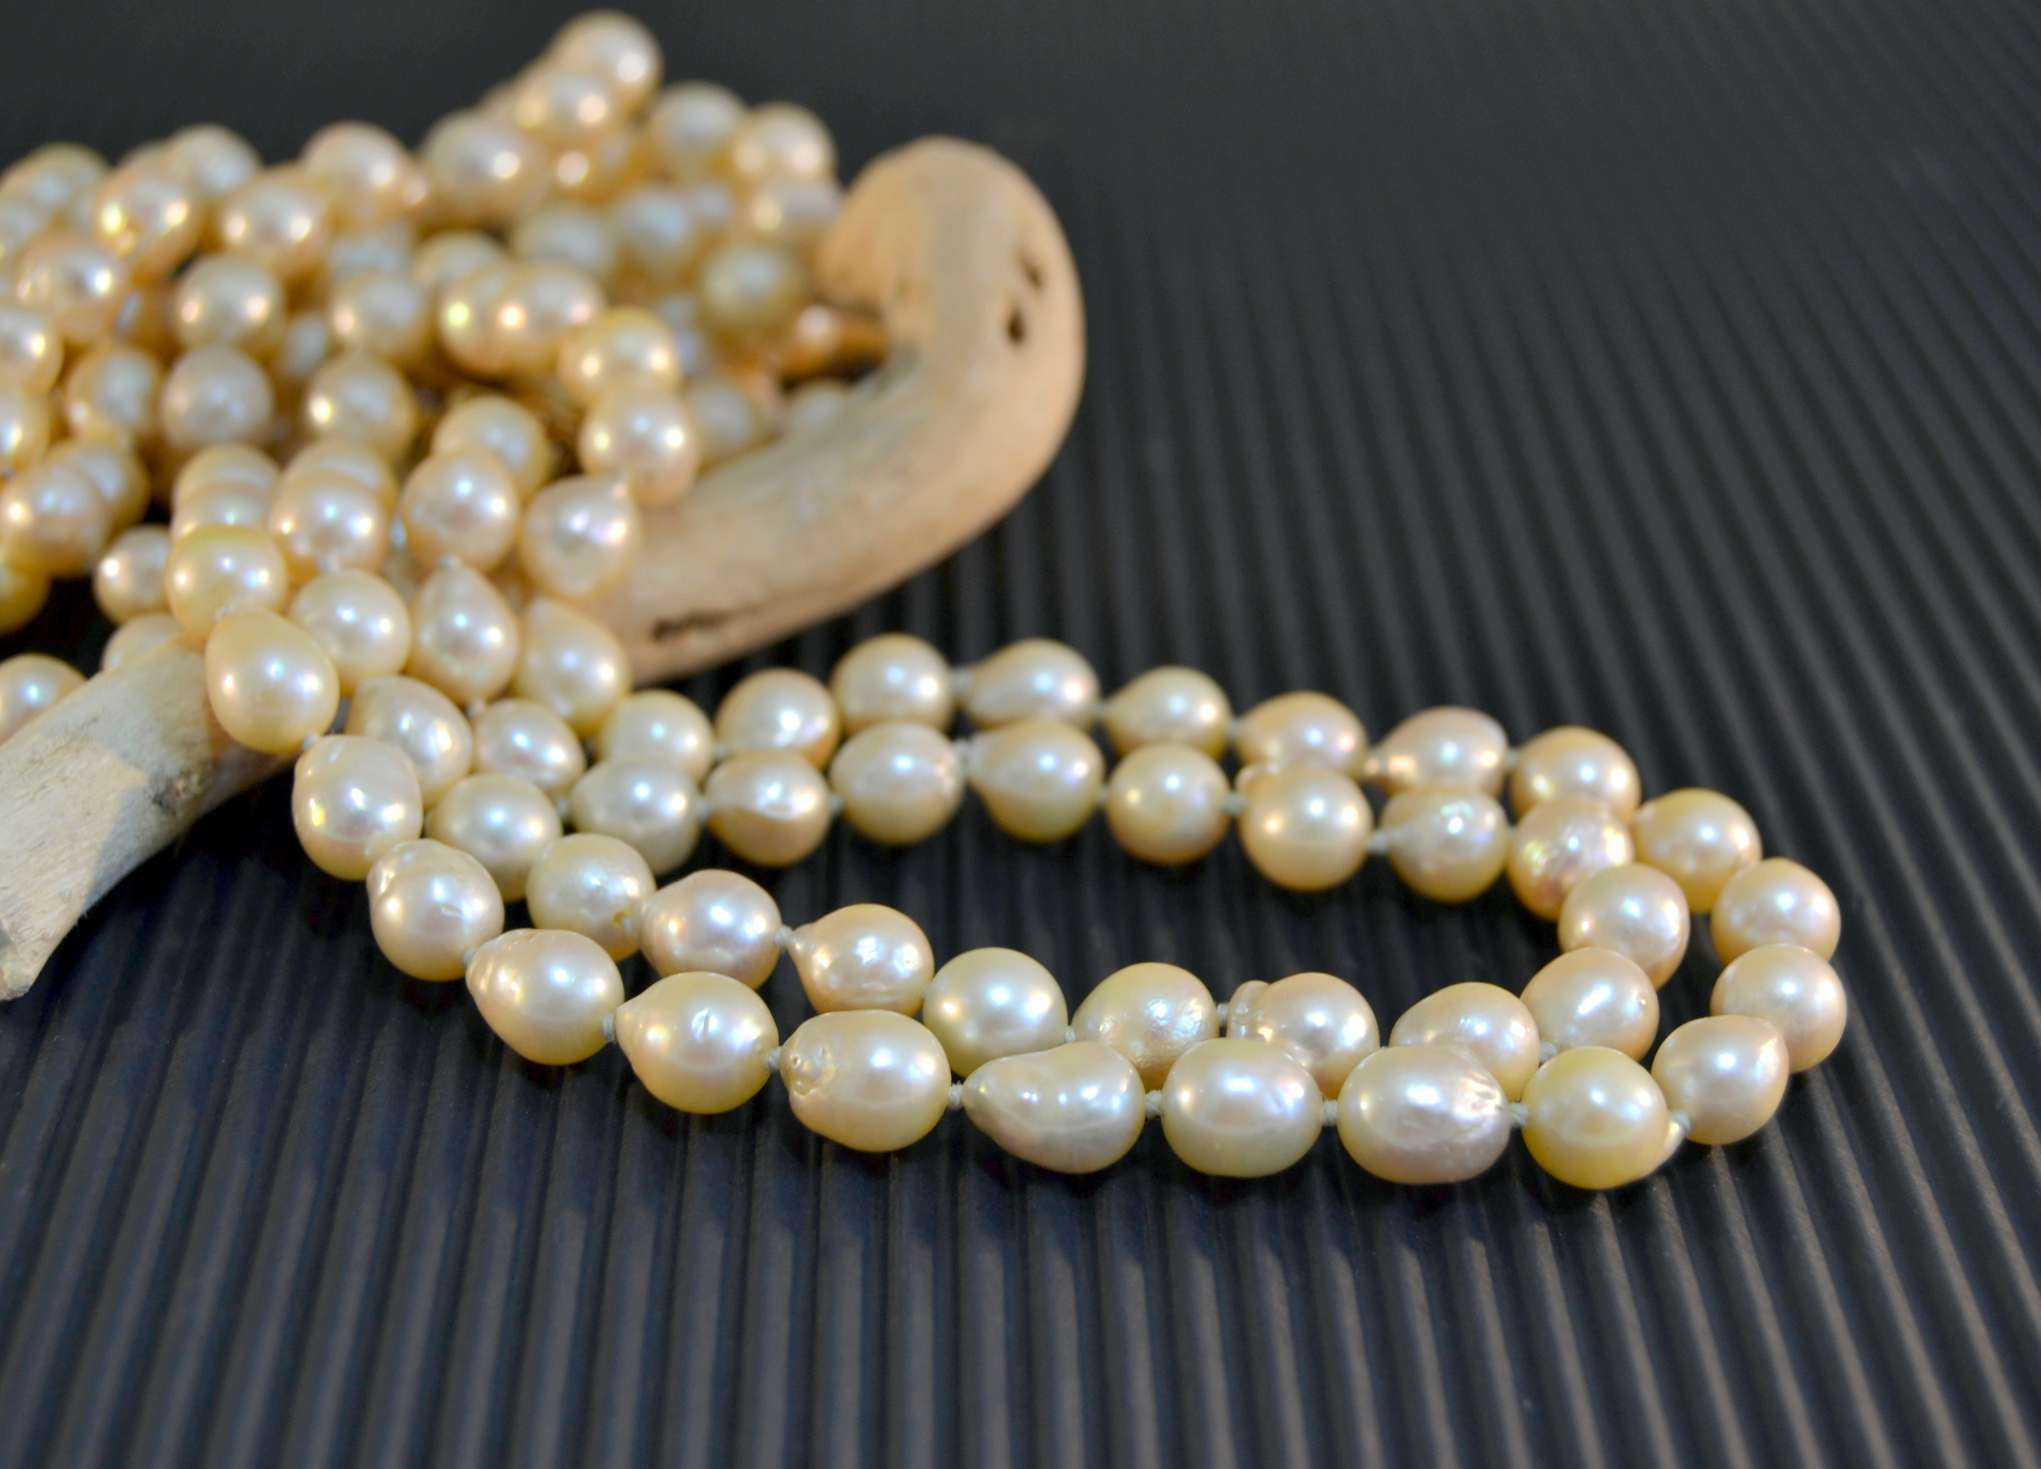 paradise view experts pages the men s wg jewelry at pearl collection type of from w our education types pearls tqnl